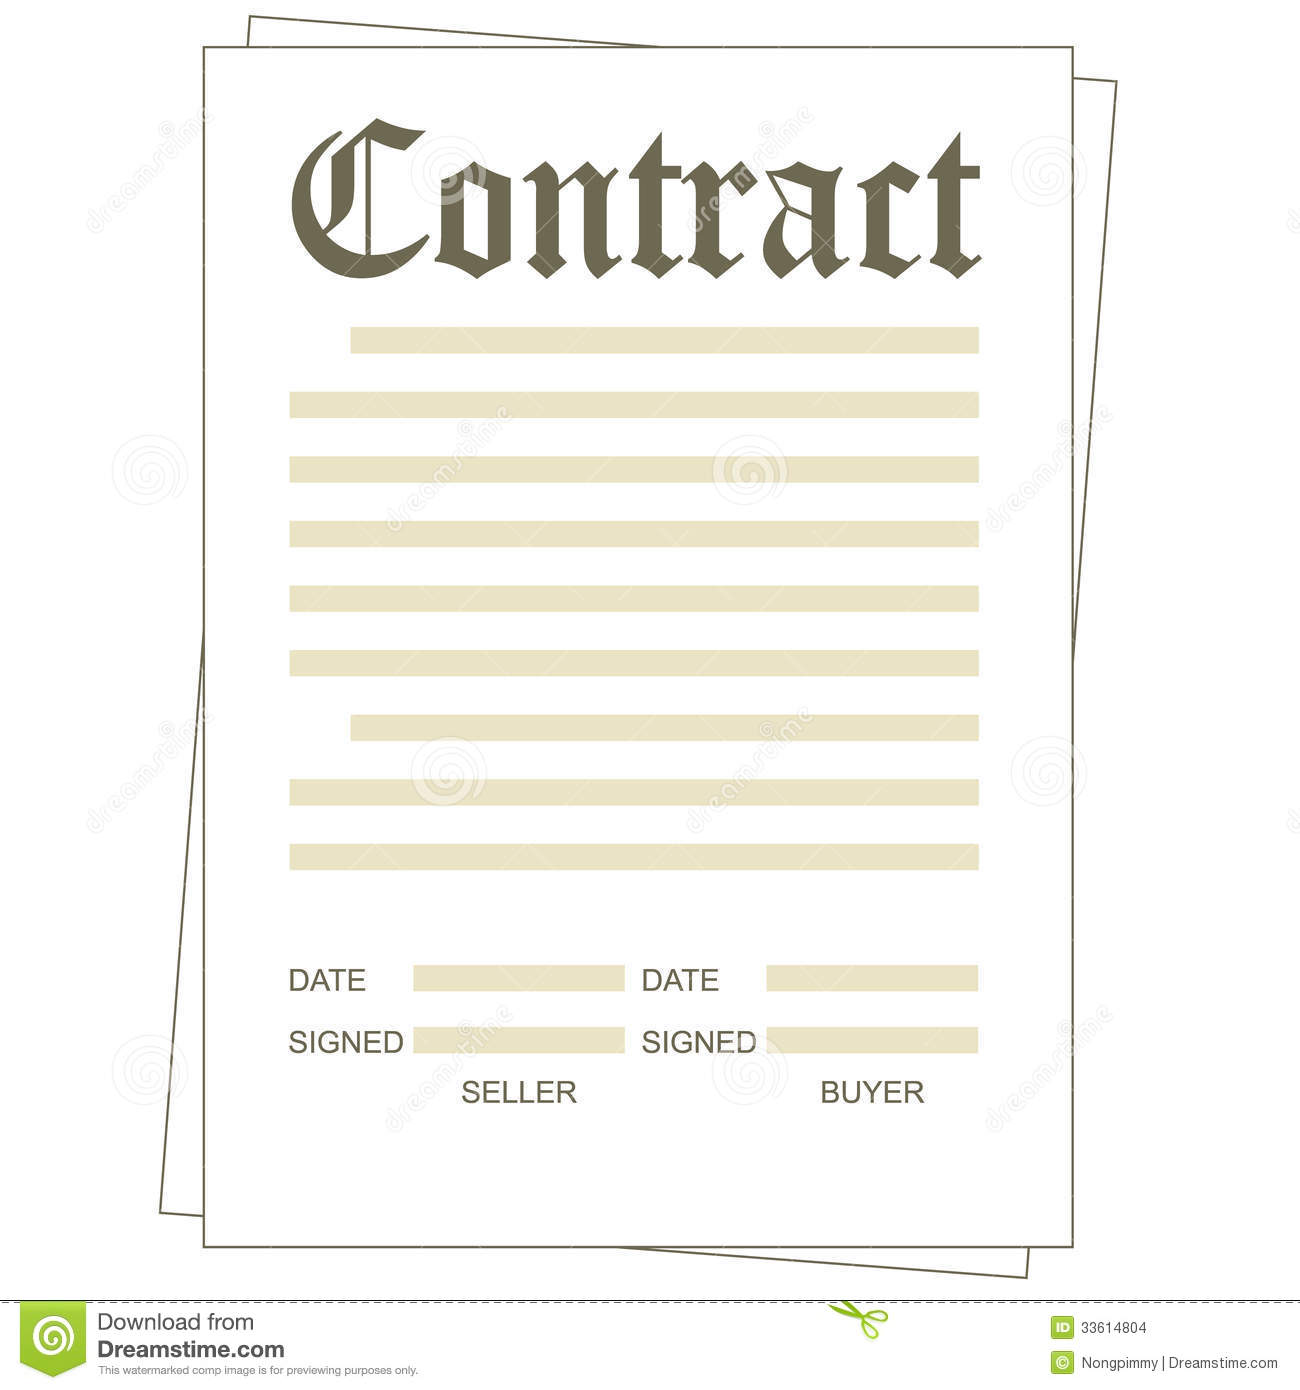 on contracts essay on contracts